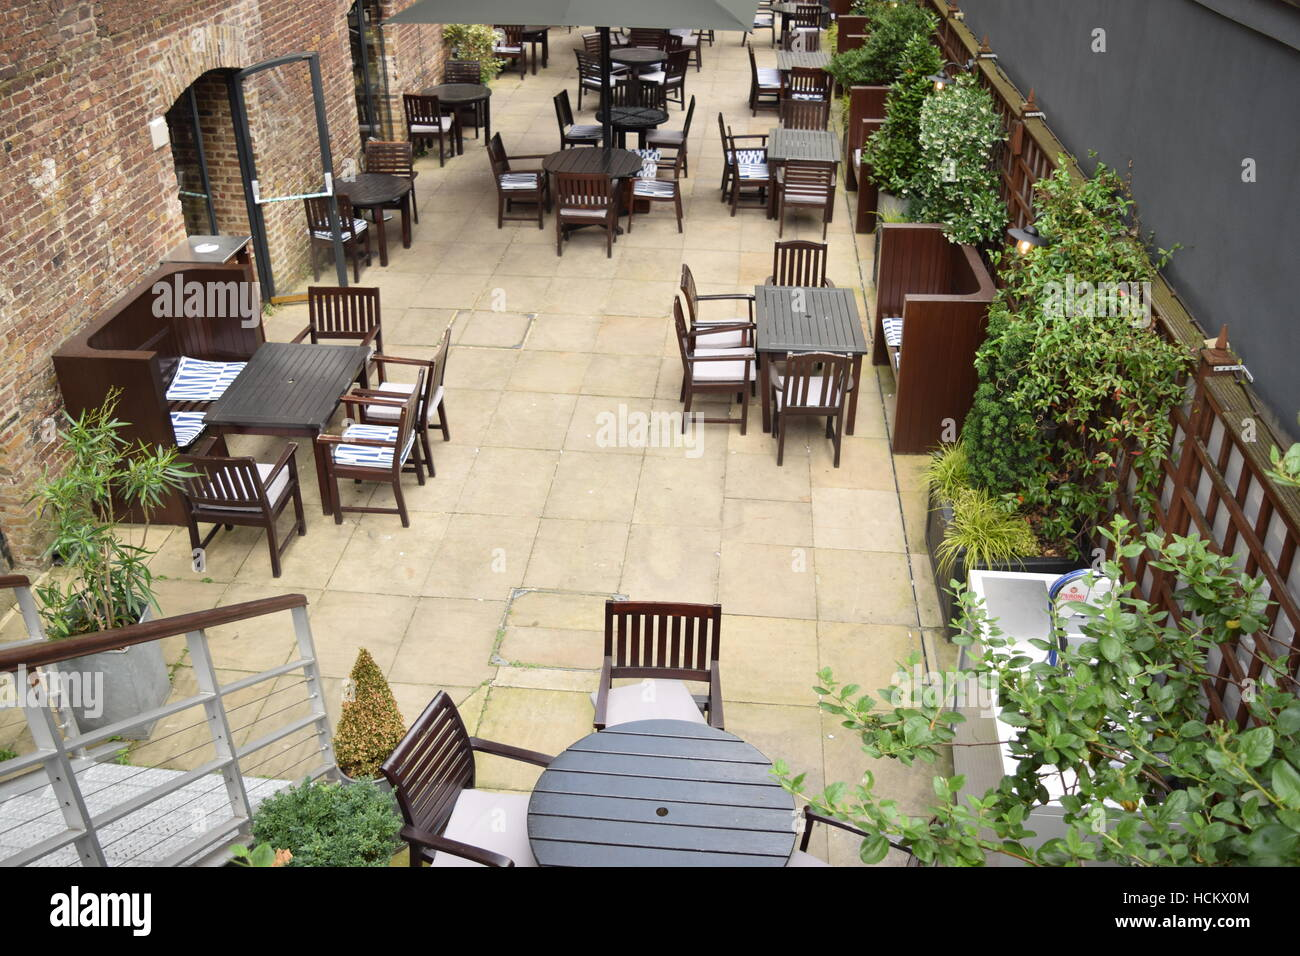 Overhead view of chairs and tables at an outdoor restaurant area Stock Photo